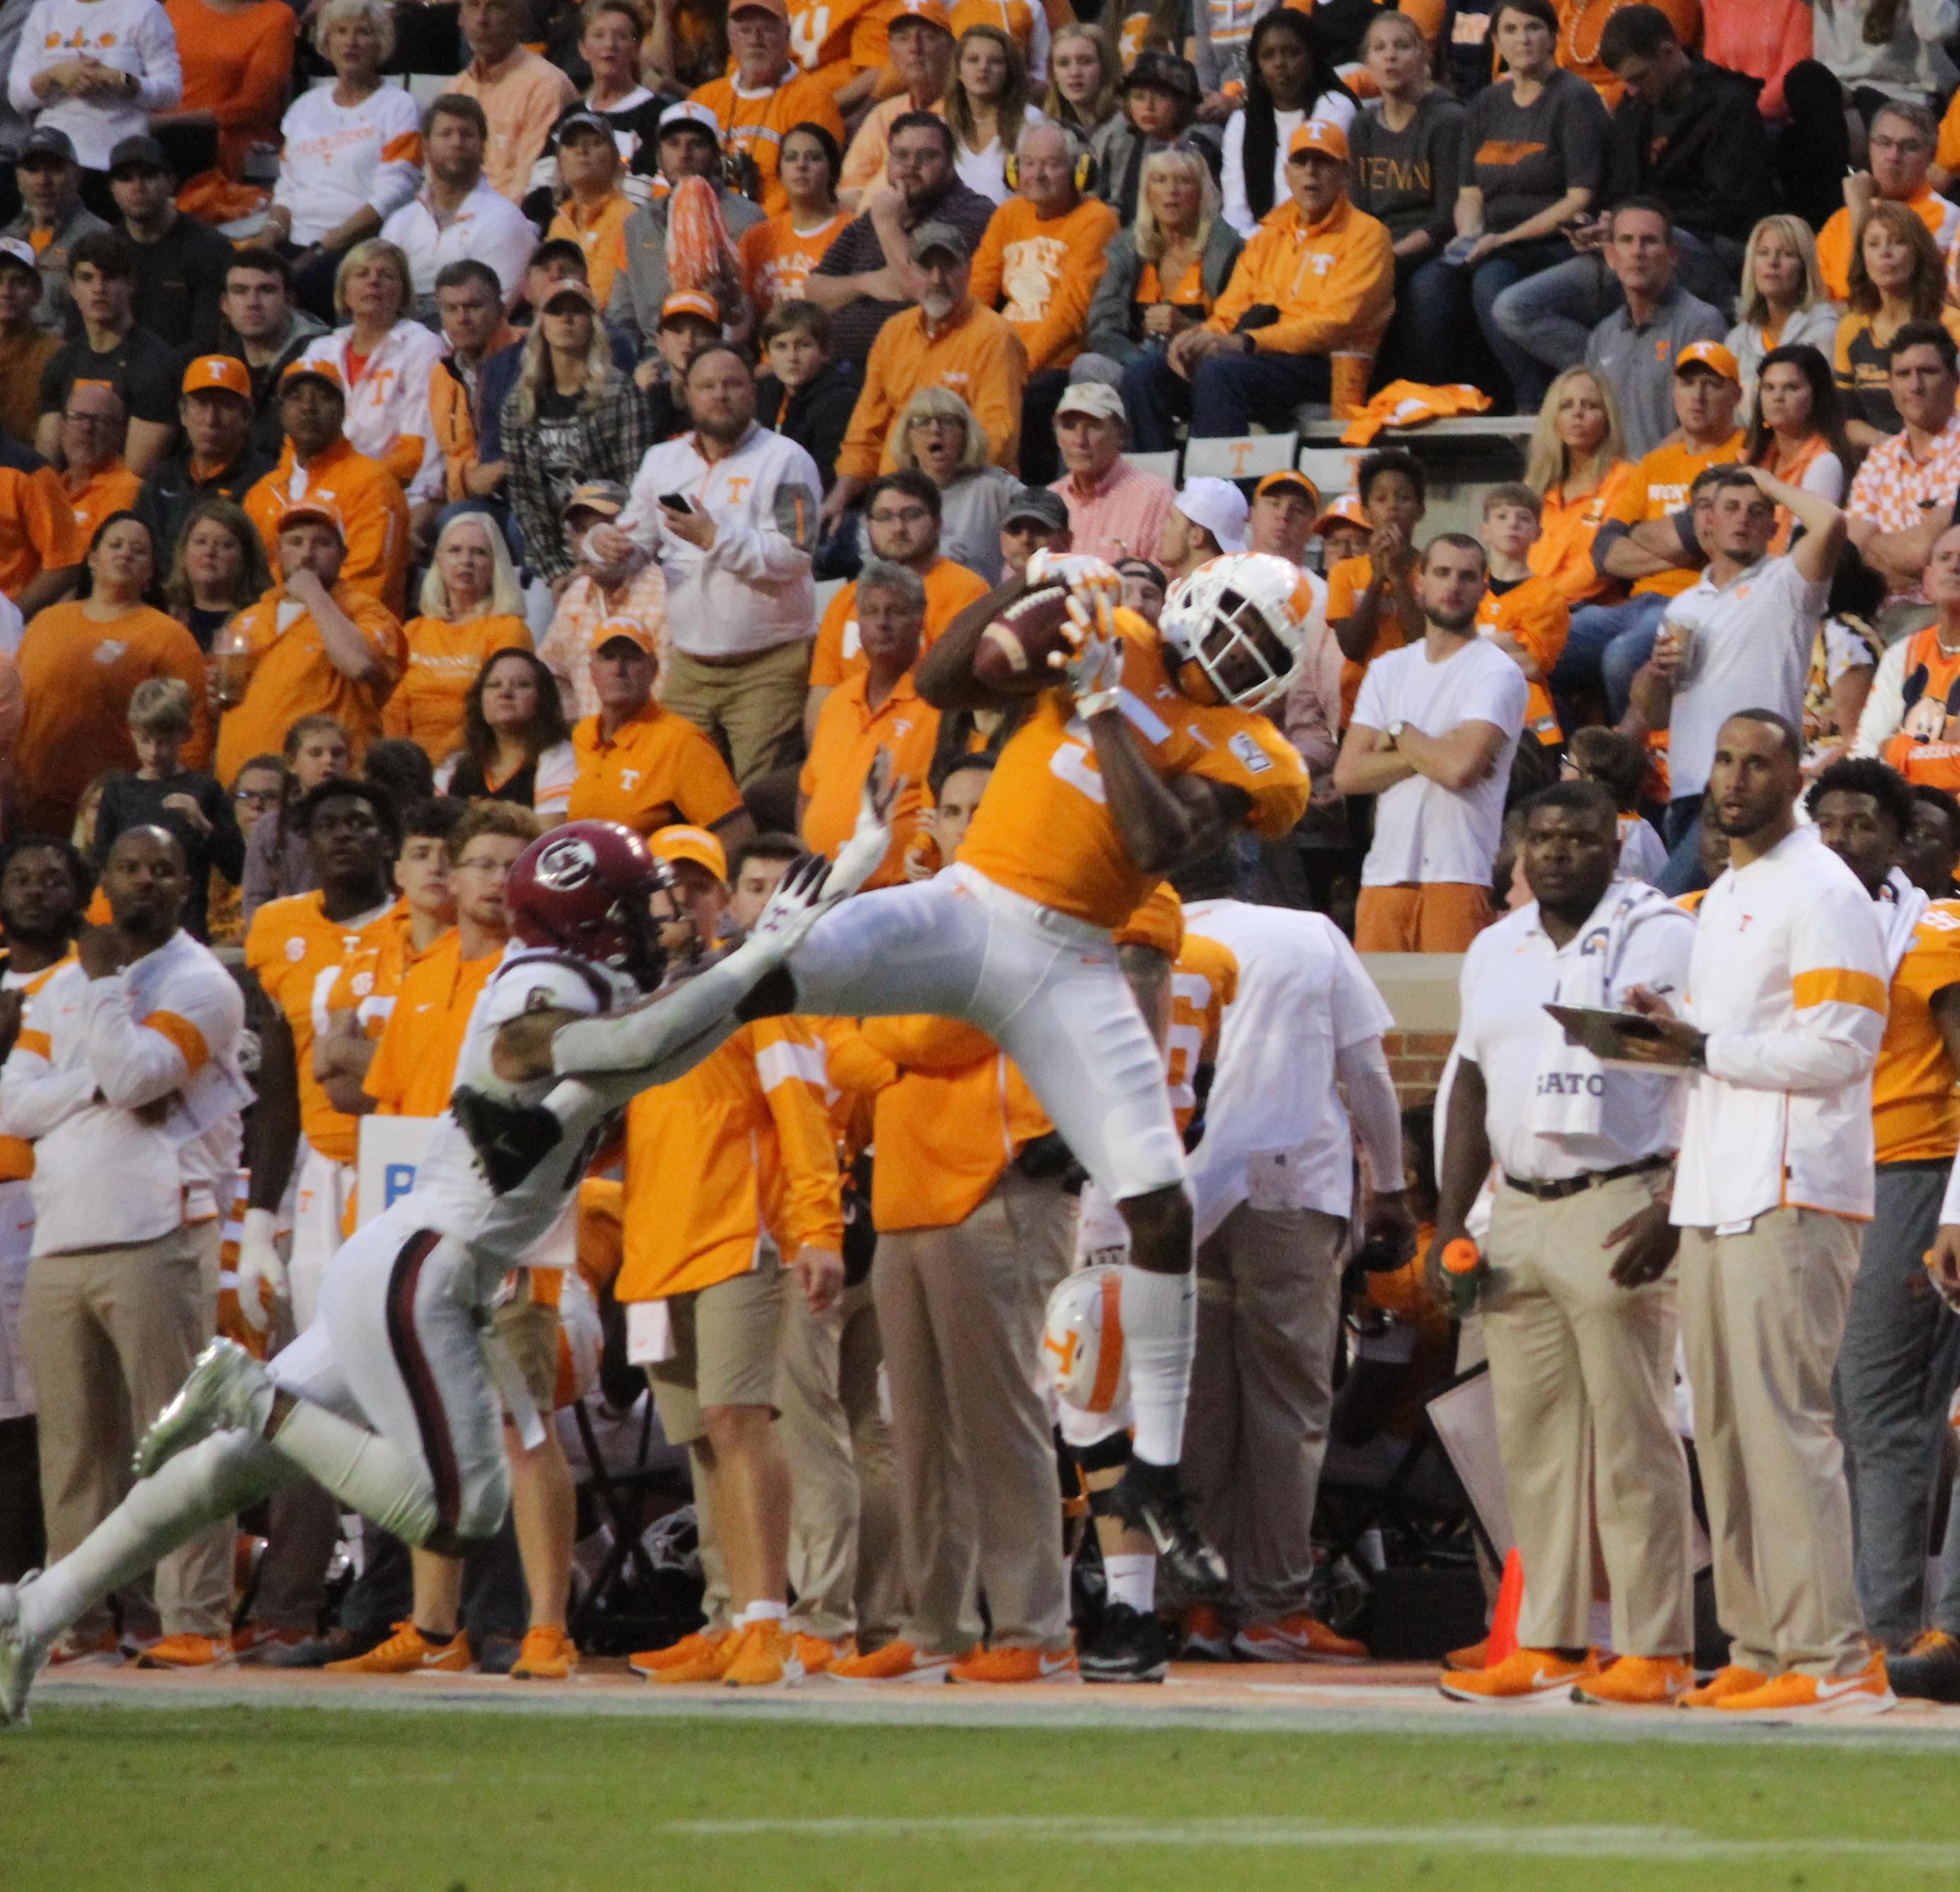 Silverberg: Vols did it the hard way, but are bowl eligible